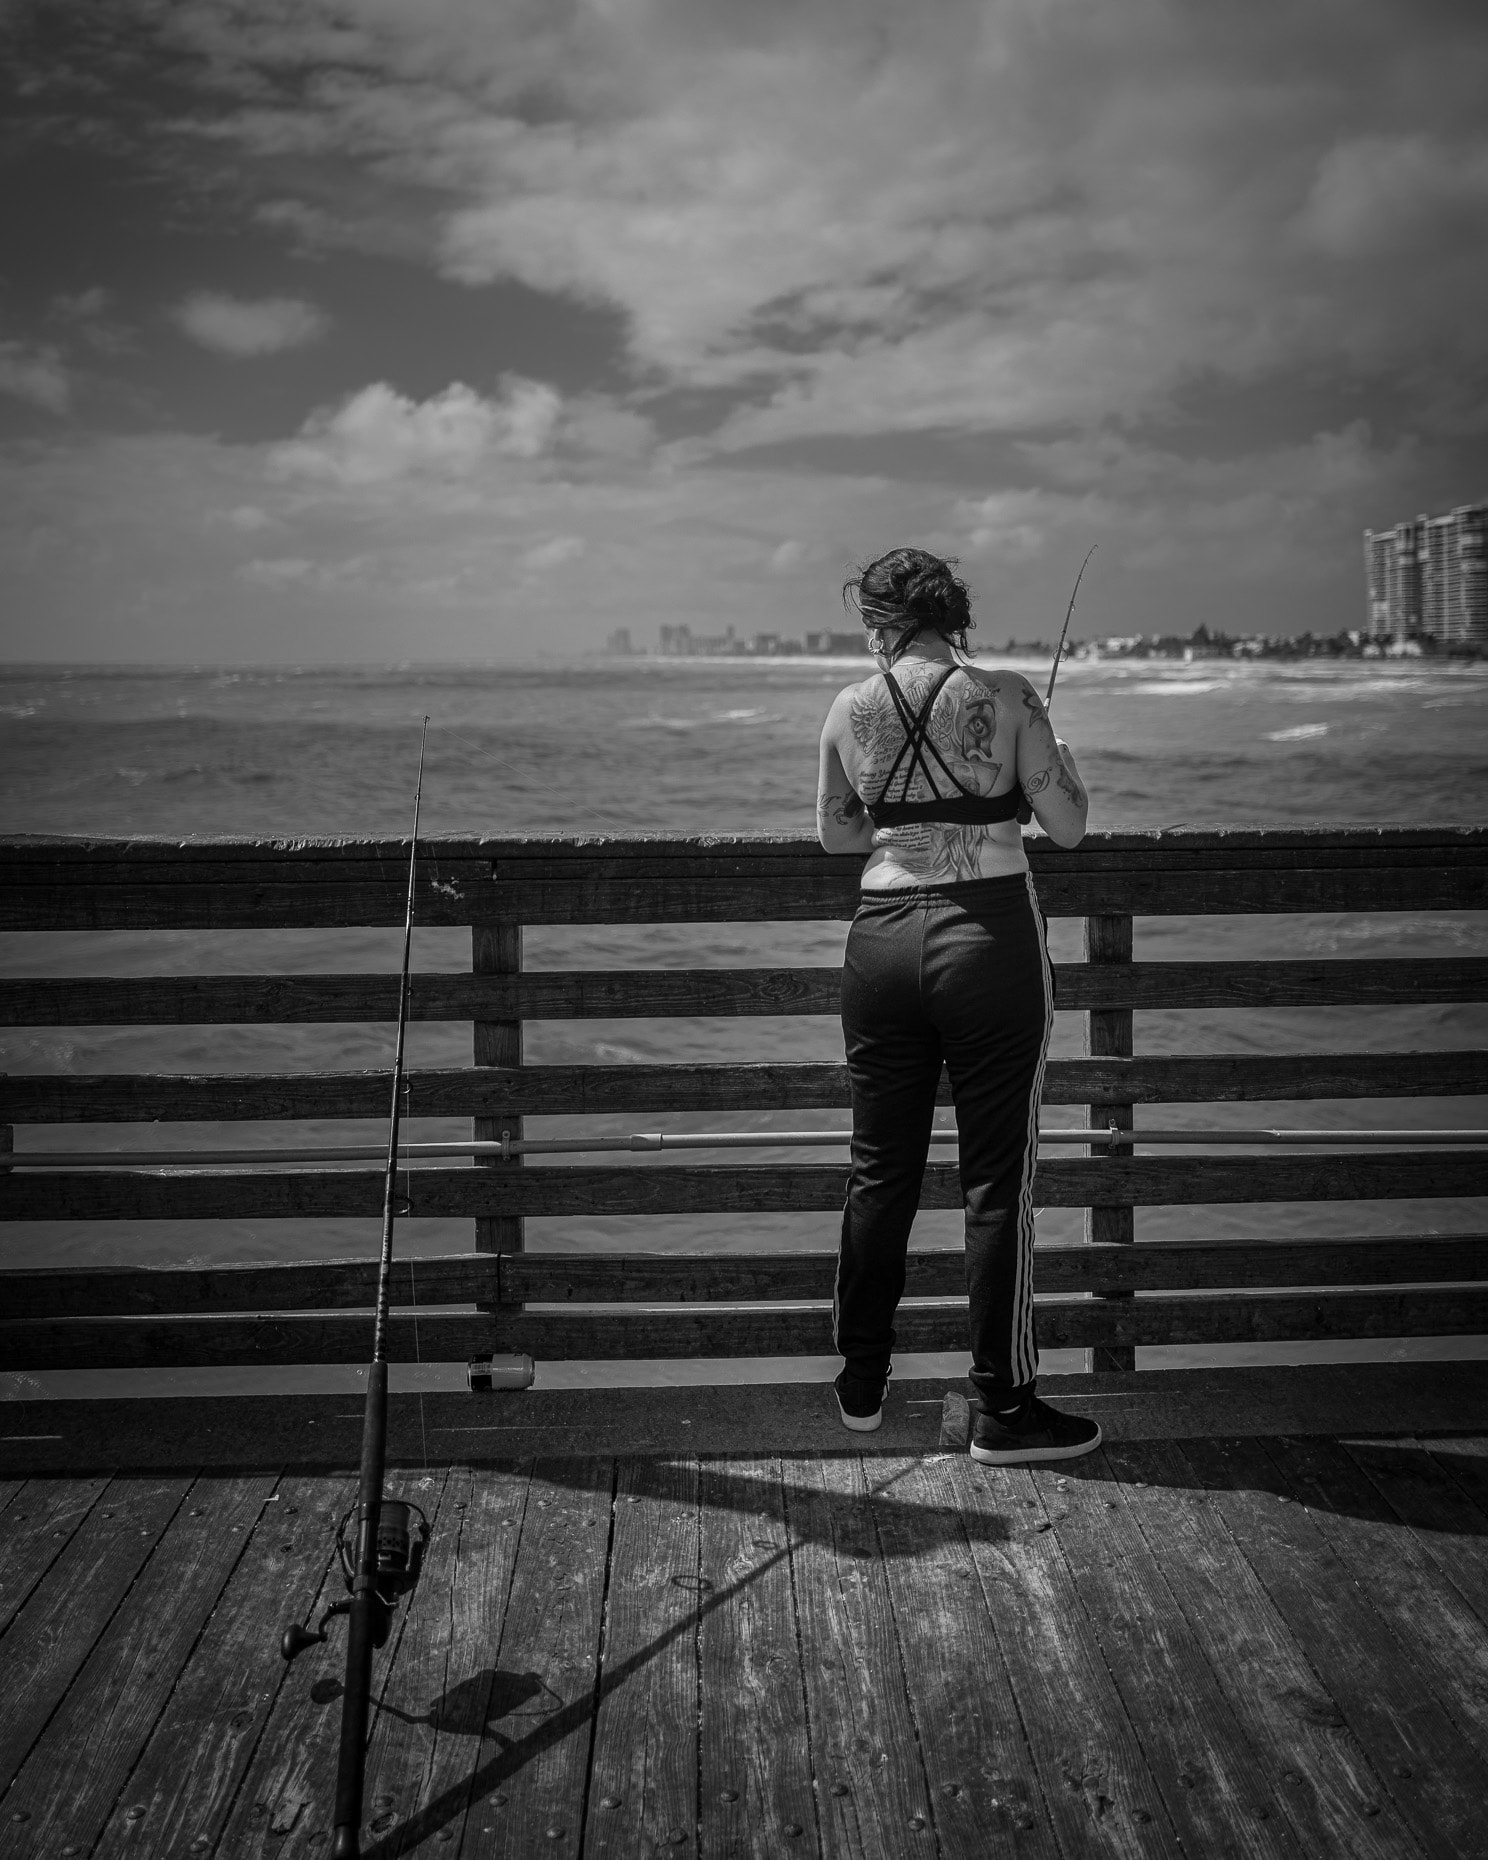 Fishing on Dania Beach pier